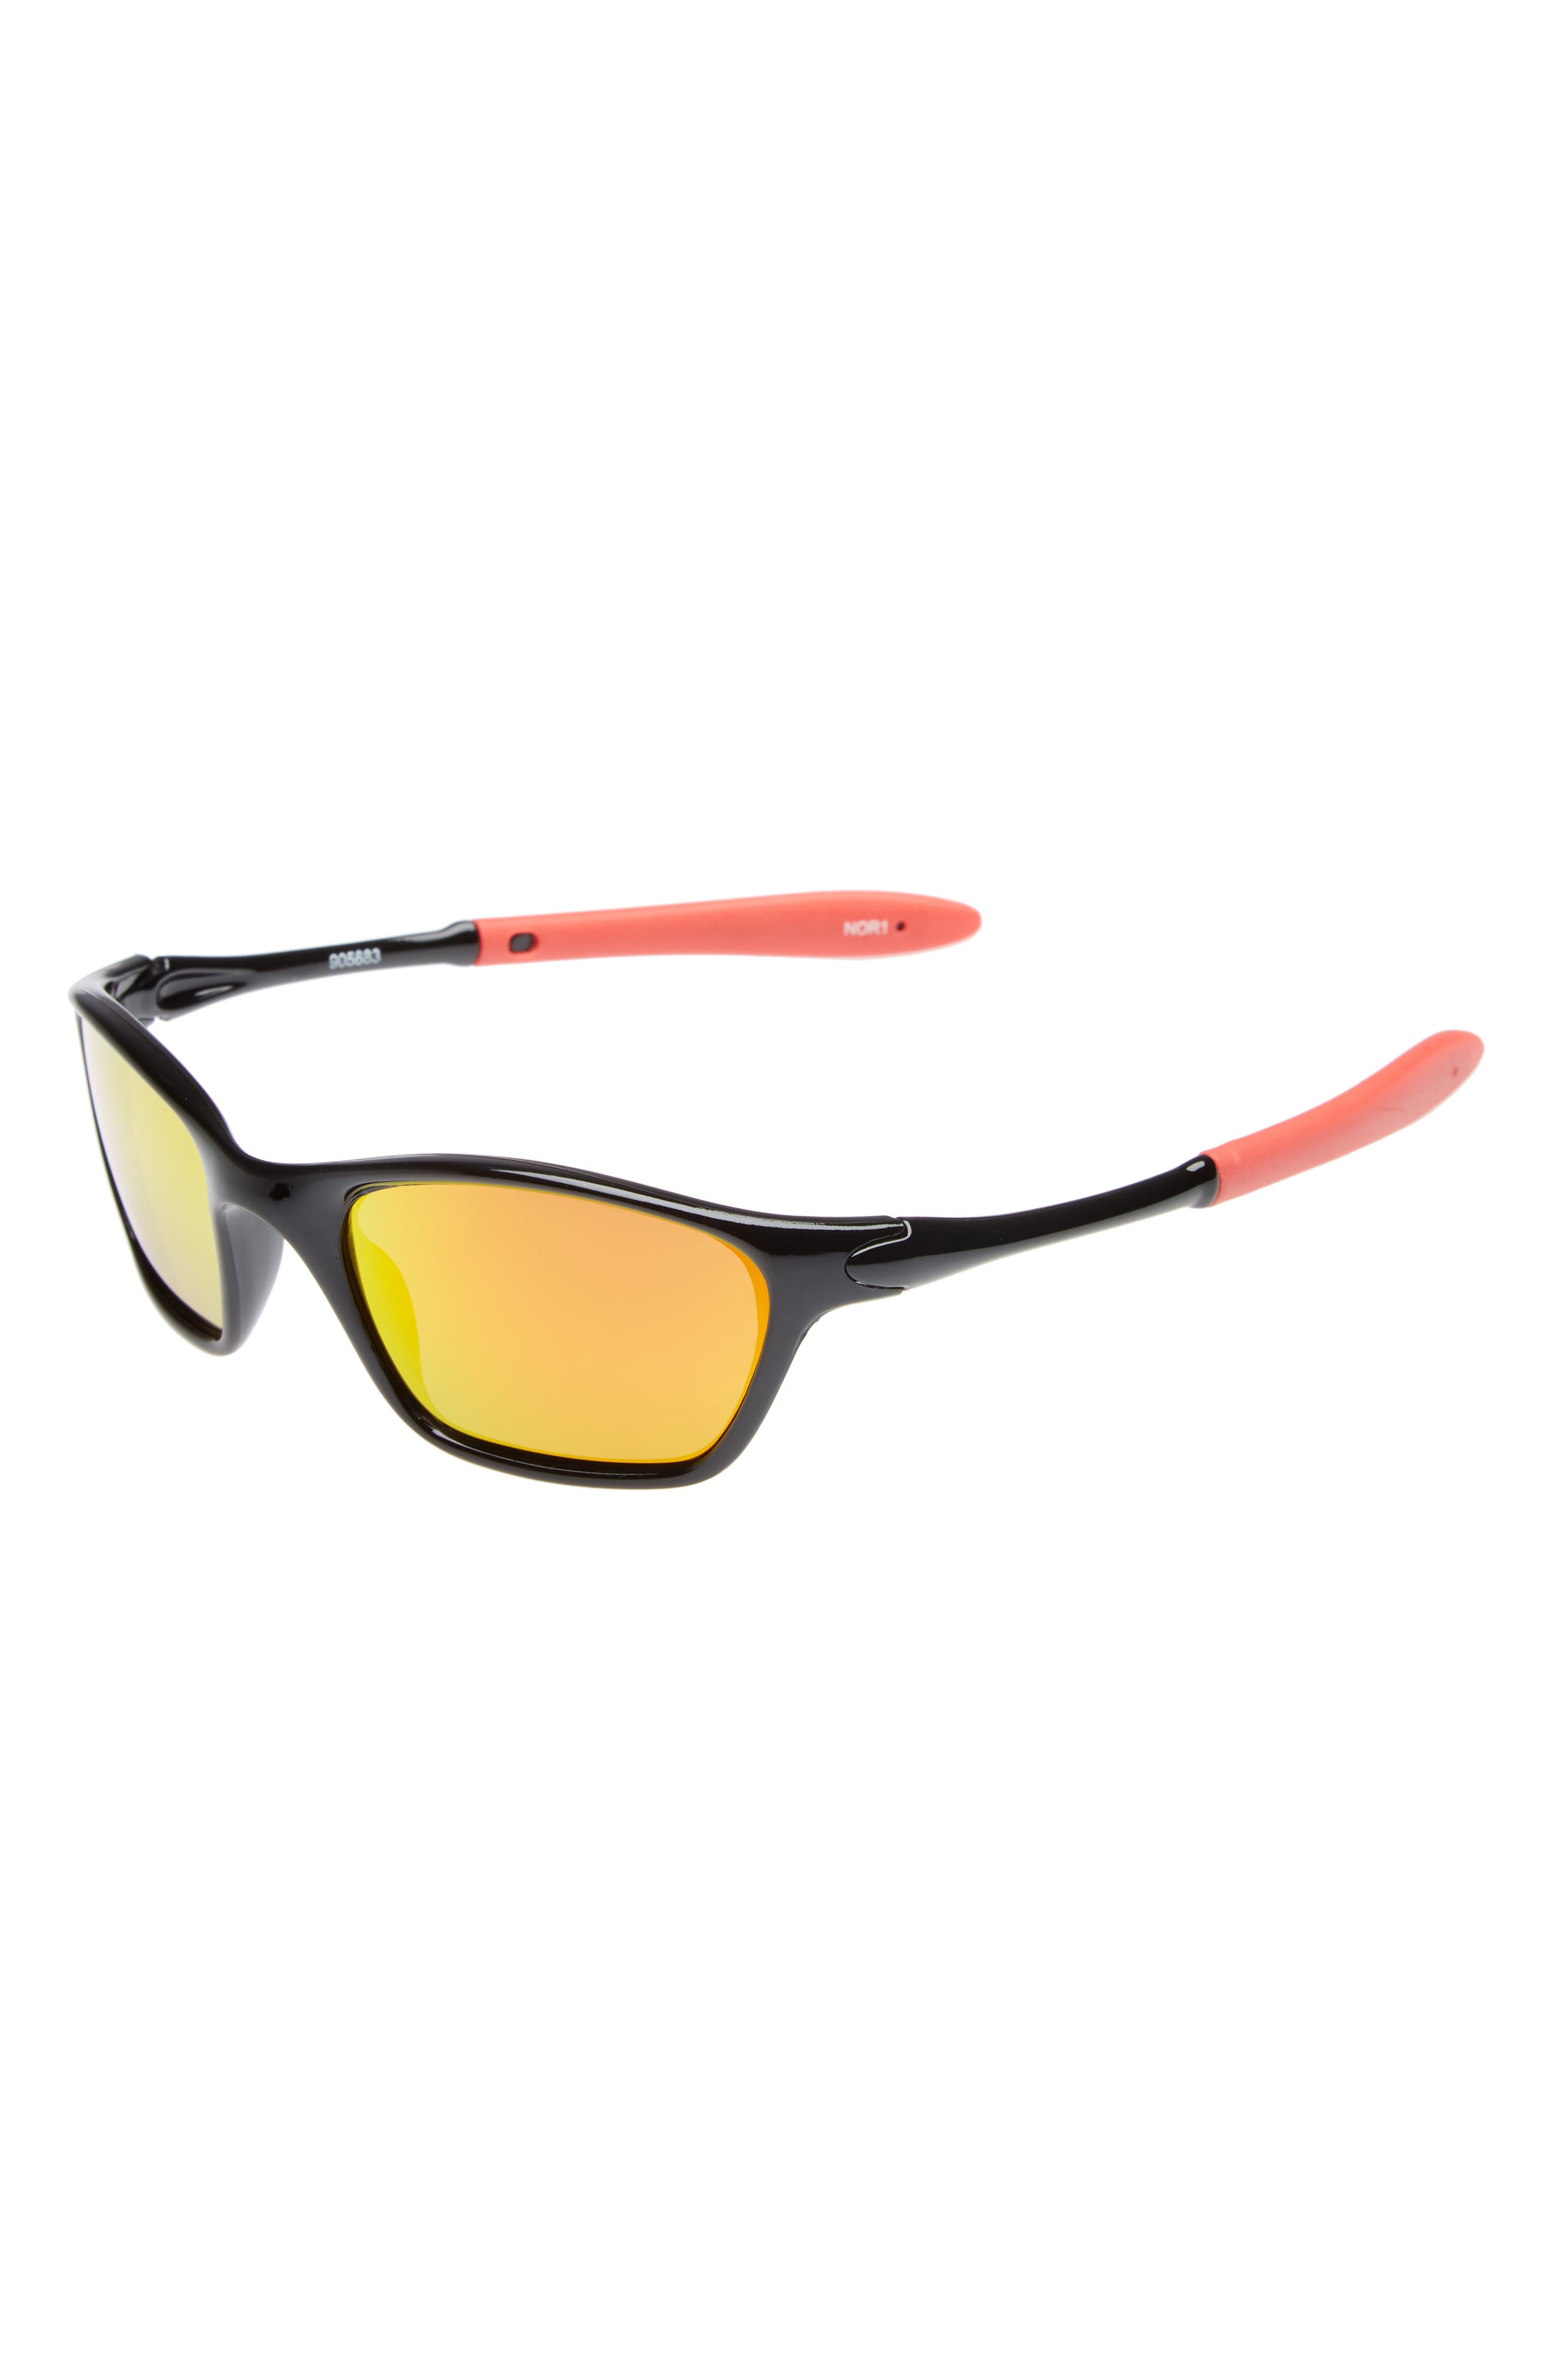 50mm Rubber Sport Sunglasses,                             Main thumbnail 1, color,